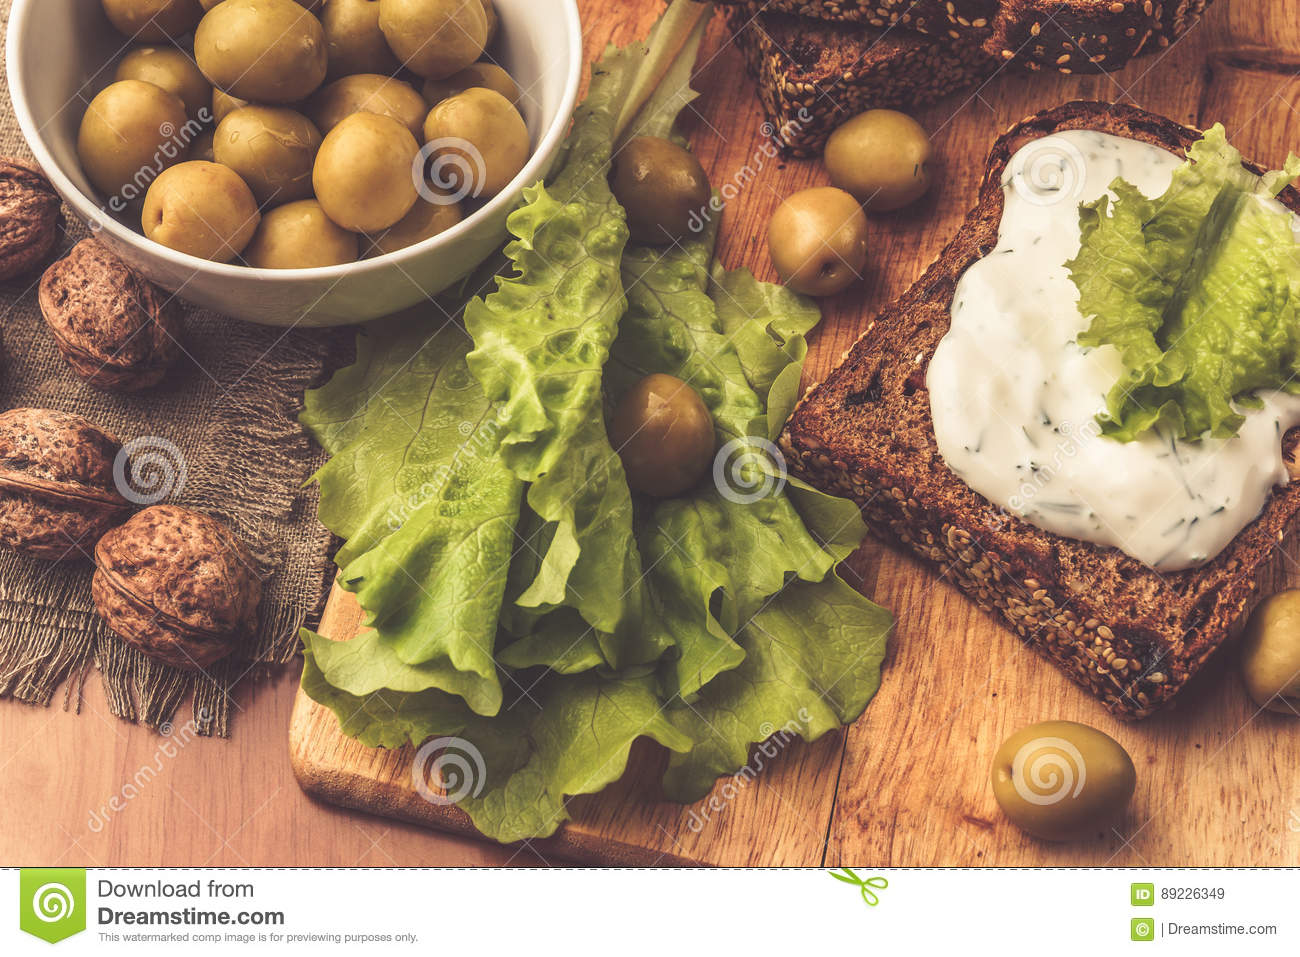 Sandwiches of homemade bread with cheese sauce or cream, lettuce, walnuts, olive